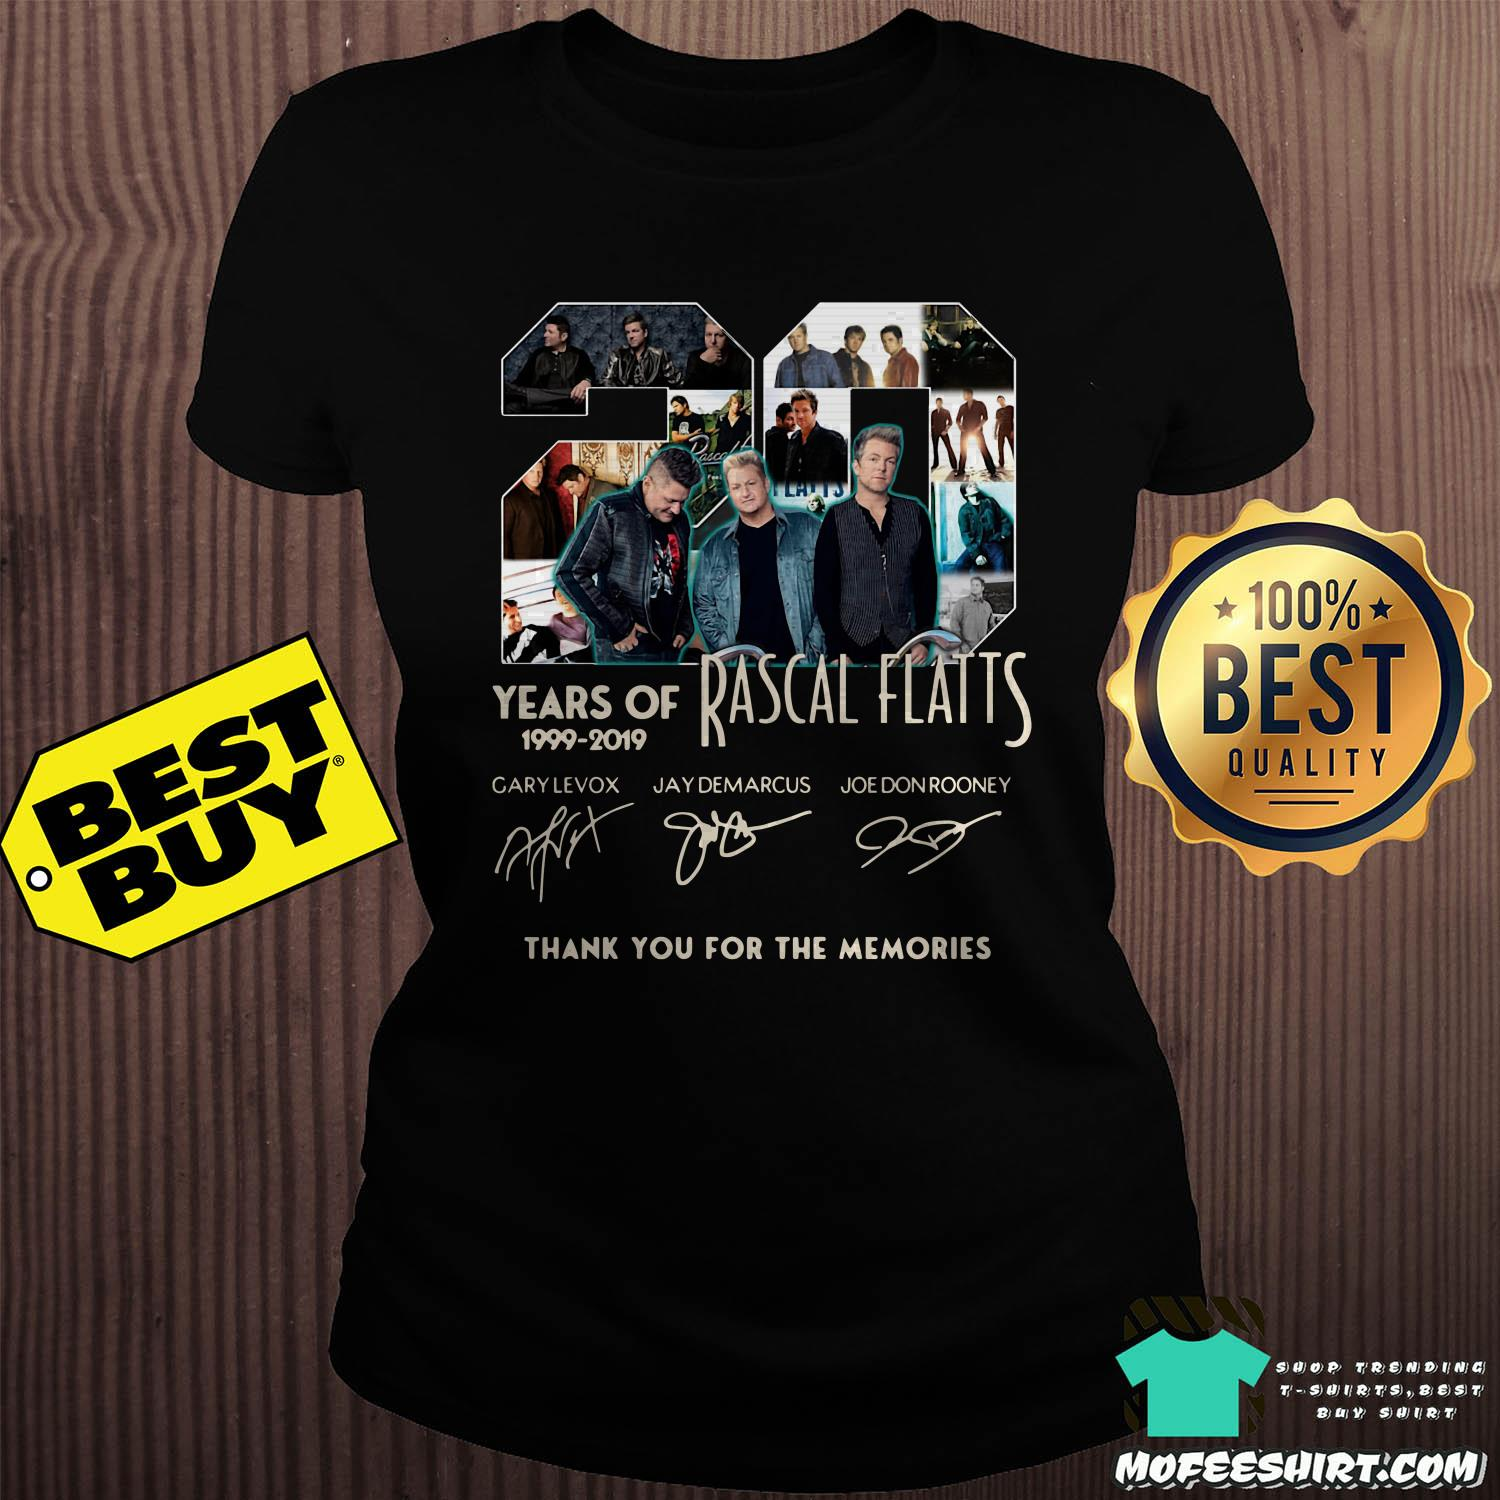 20 years of rascal flatts 1999 2019 thank you for the memories signature ladies tee - 20 Years of Rascal Flatts 1999-2019 thank you for the memories signature shirt